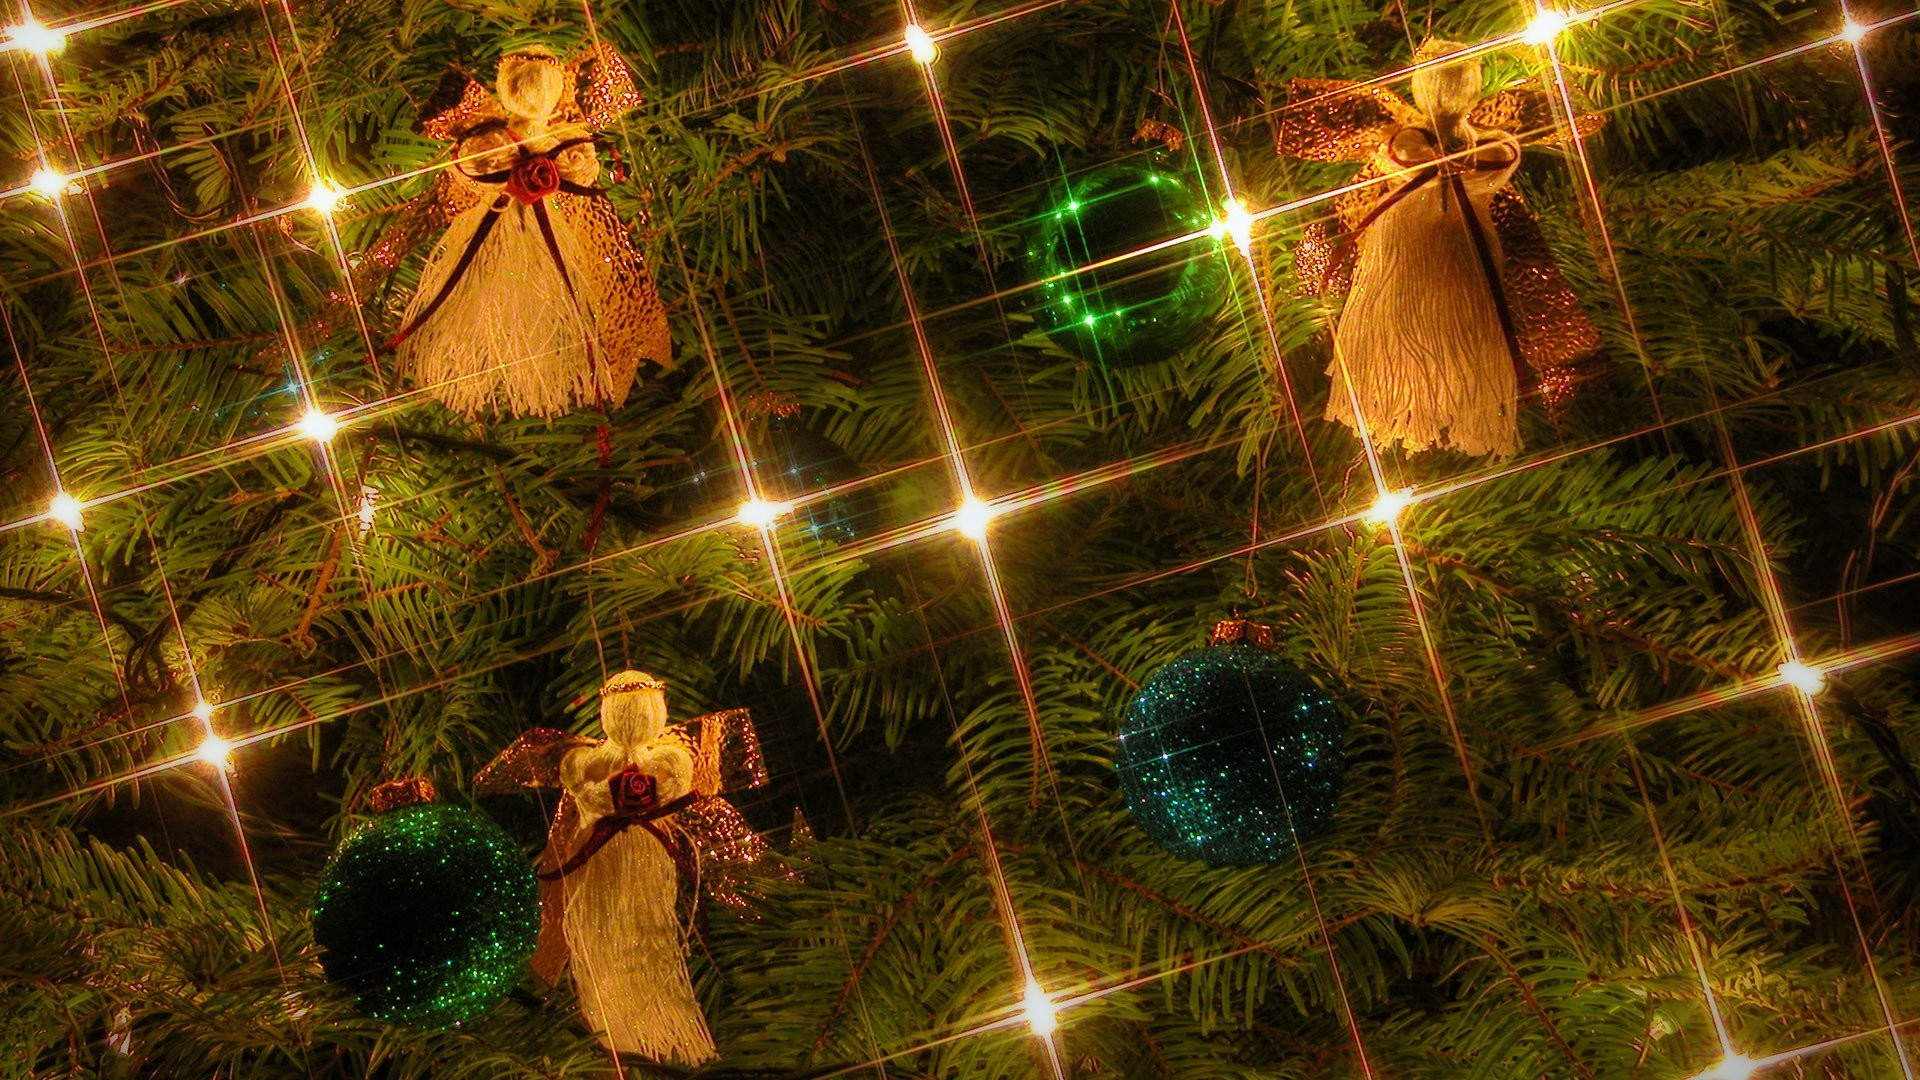 1920x1080 free, christmas, easyworship, backgrounds, tree, angels, ordements, lights